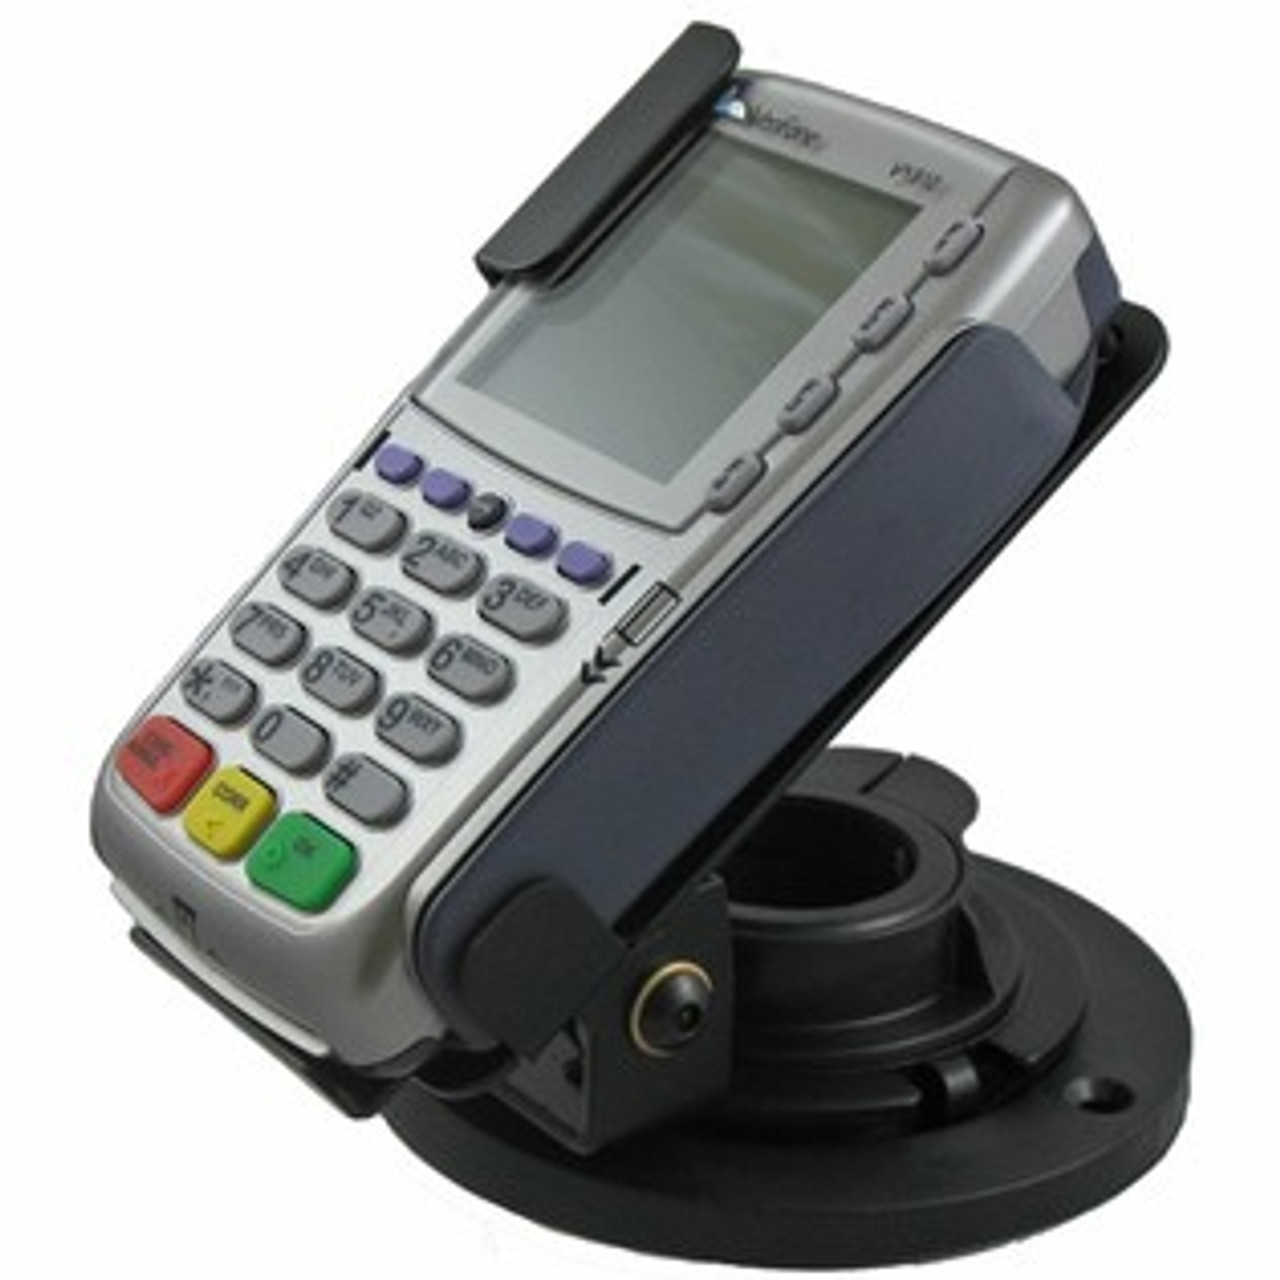 Swivel Stands Credit Card Stand Low Profile VeriFone VX810